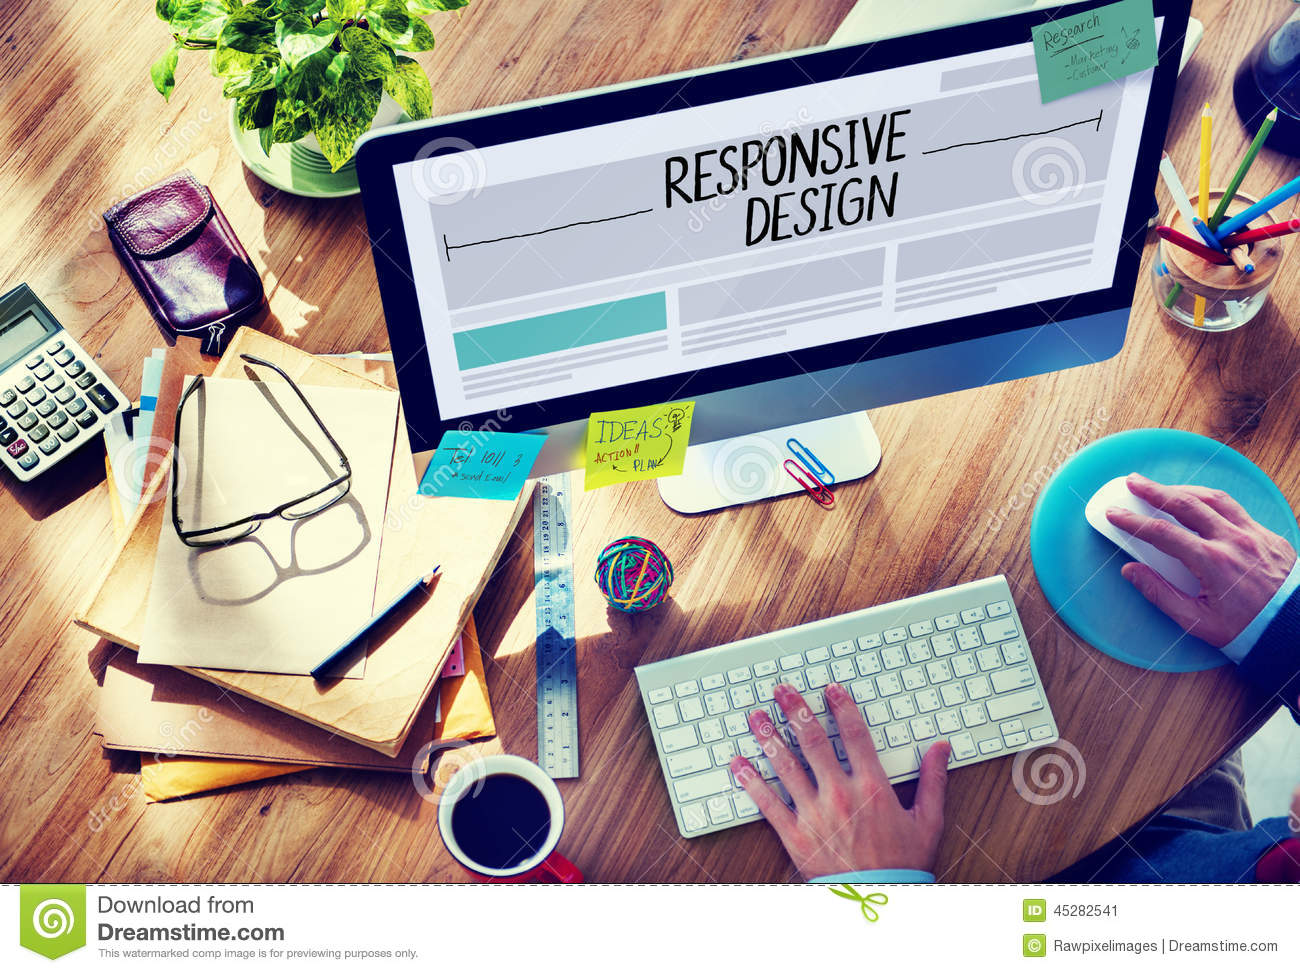 Man Working on a Responsive Web Design